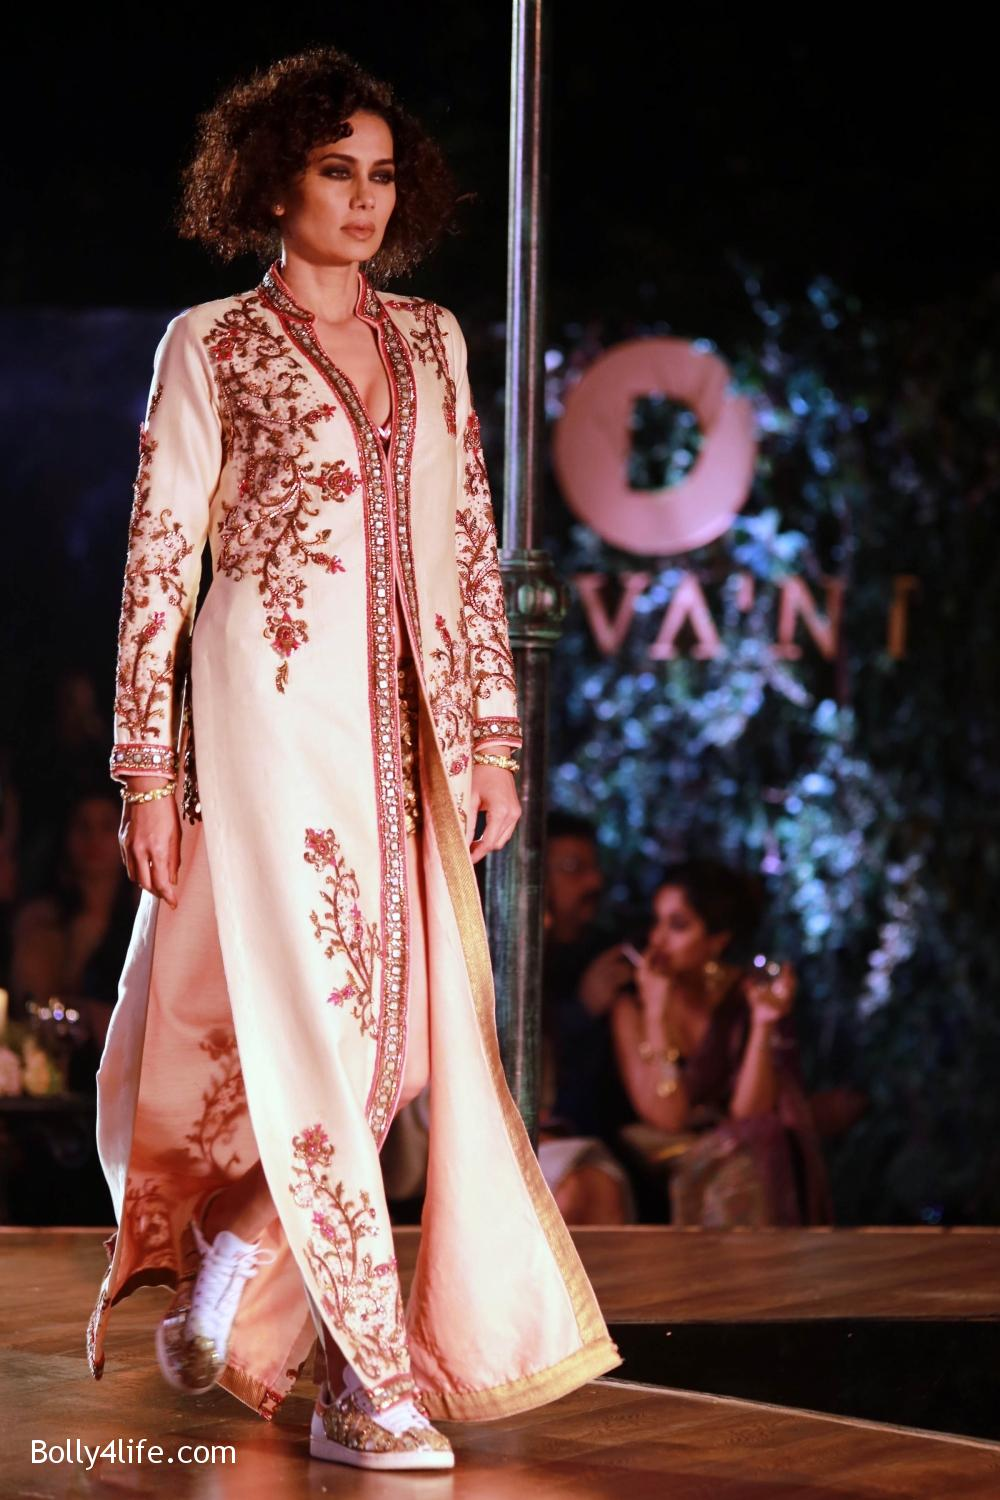 Divani-Fashion-Show-Ranveer-Singh-and-Vaani-Kapoor-5.jpg